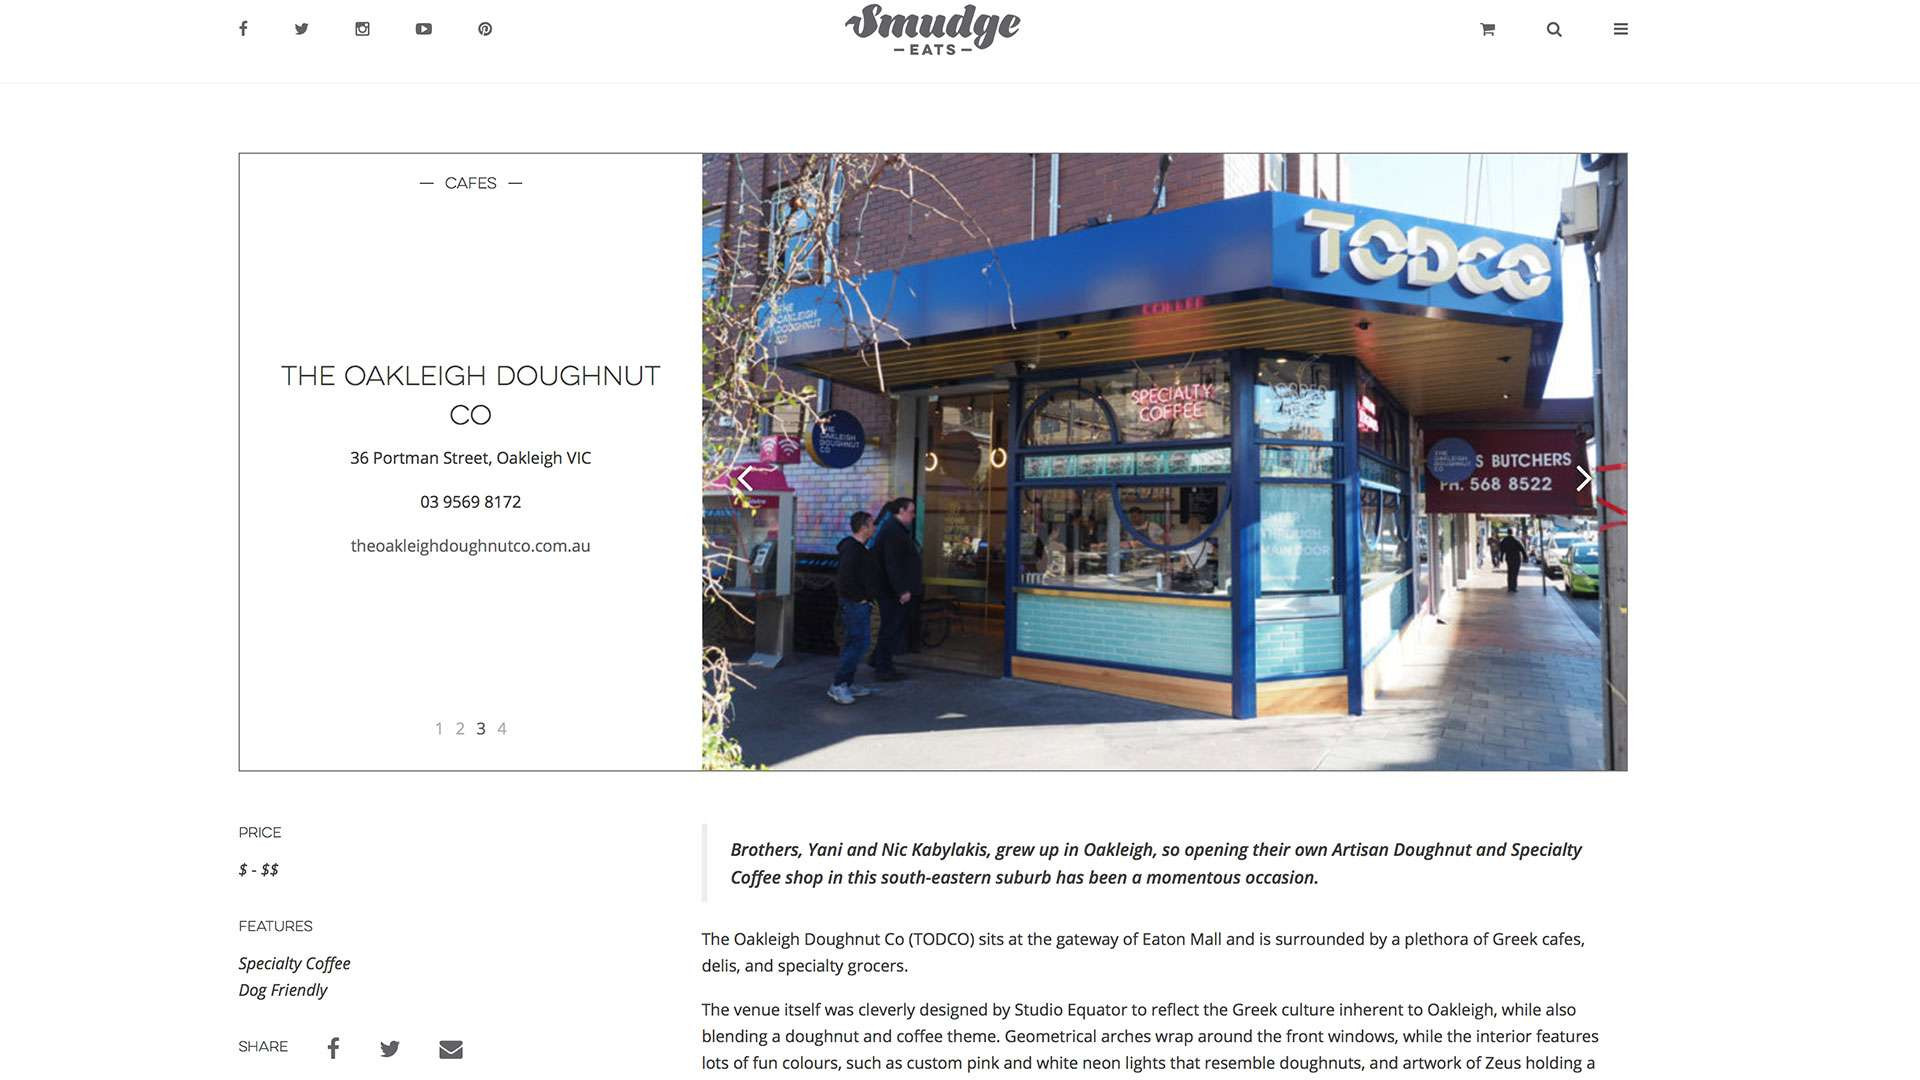 TODCO Doughnut Shop Design gets props on Smudgeeats.com